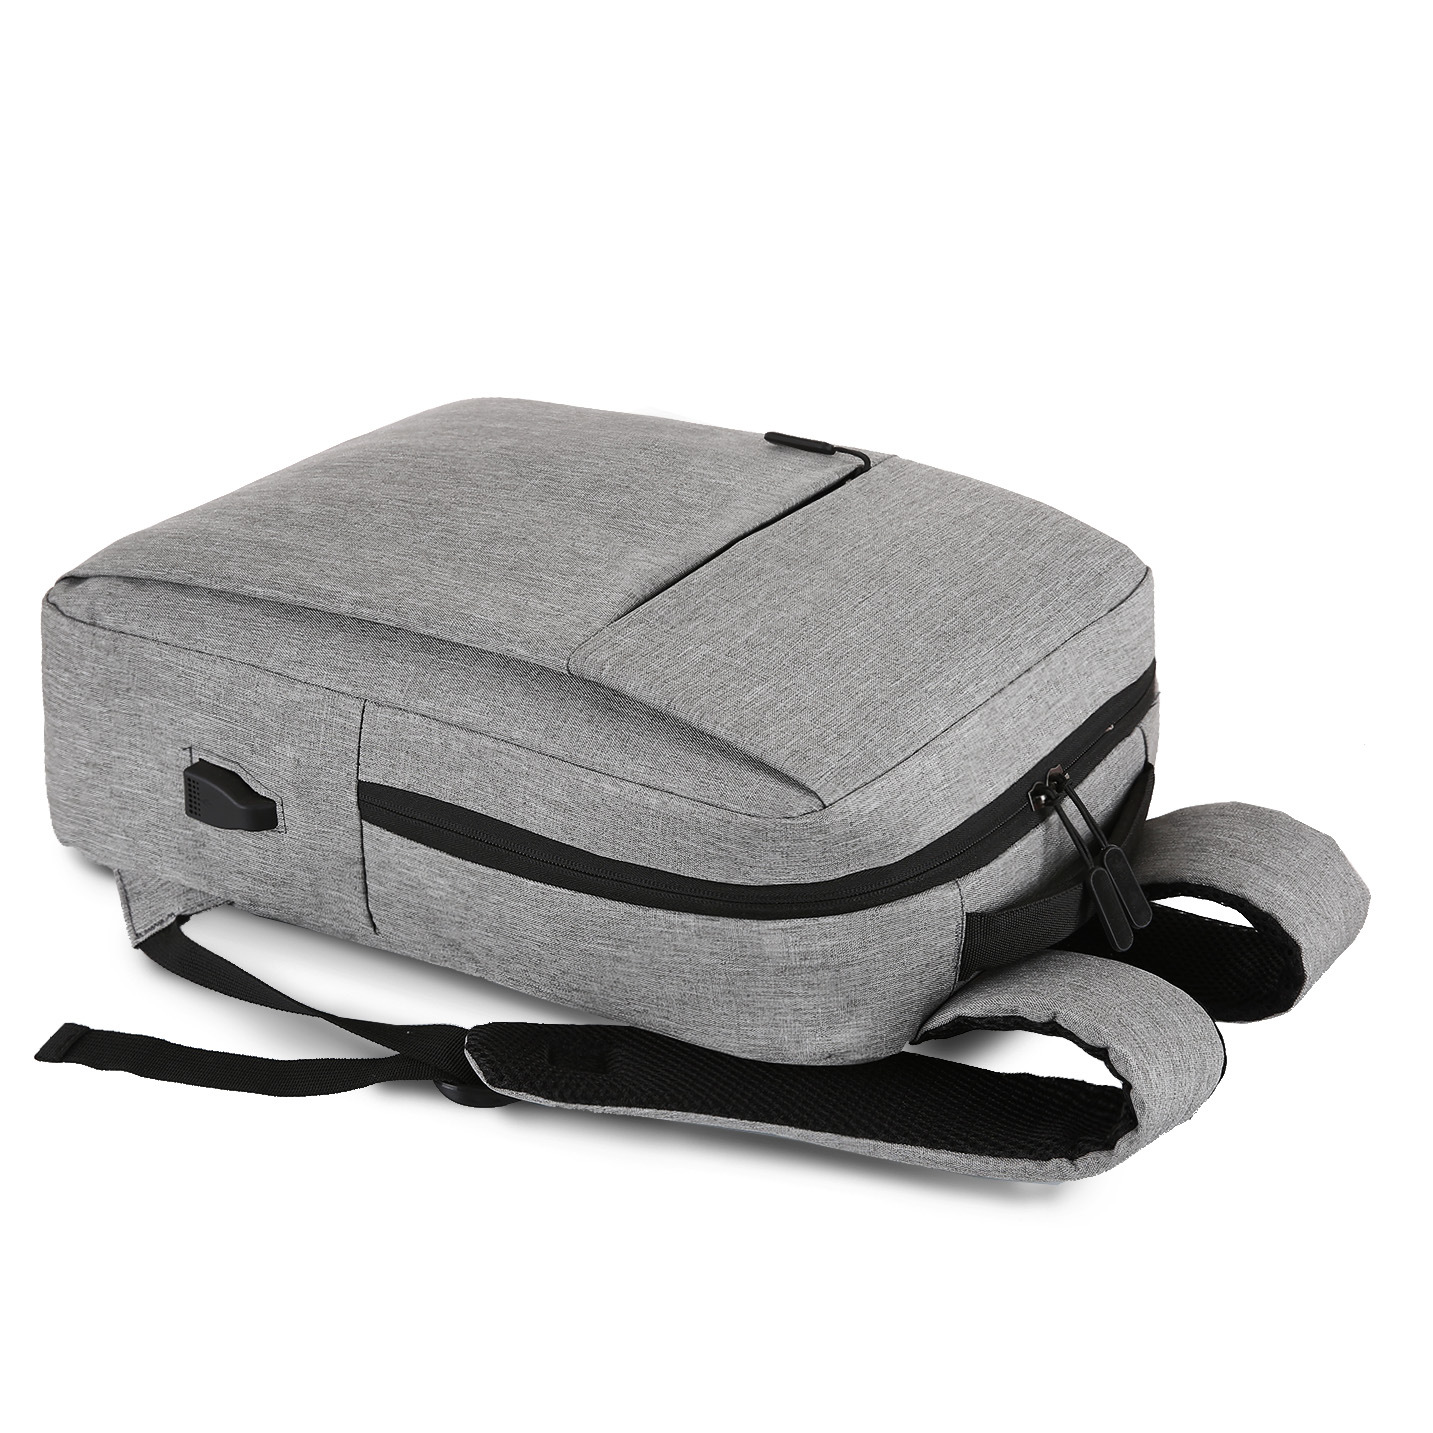 Xiaomi Business Casual Computer Backpack MEN'S Travelling Bag Secondary School College Student School Bag USB